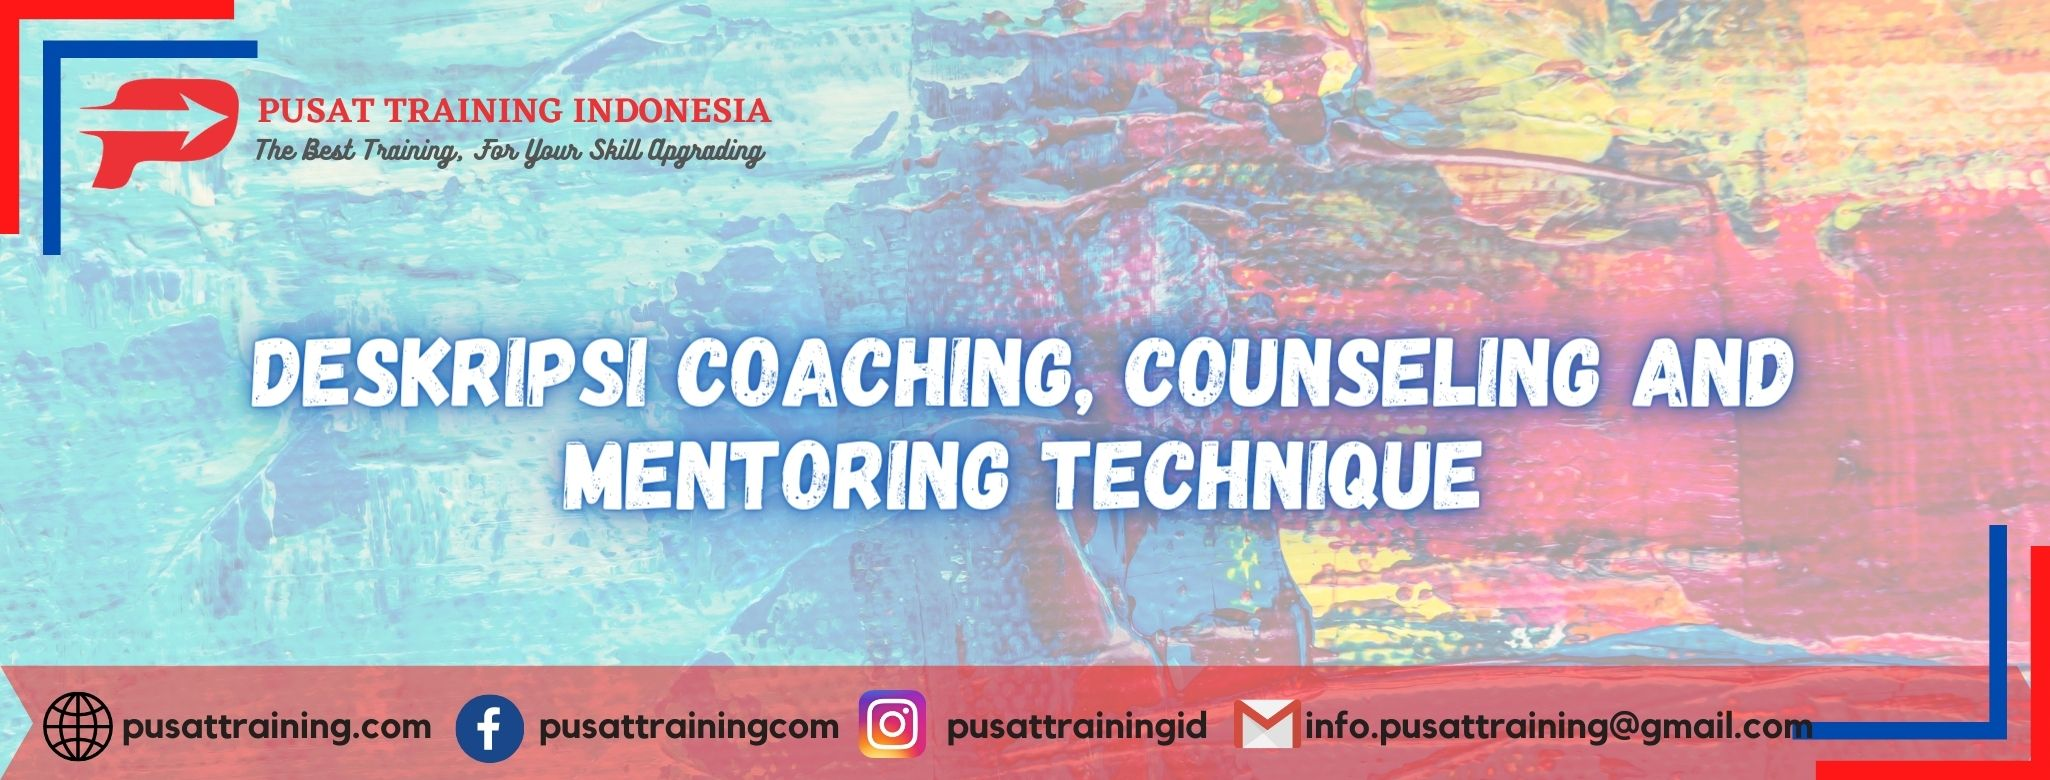 Deskripsi-Coaching-Counseling-and-Mentoring-Technique